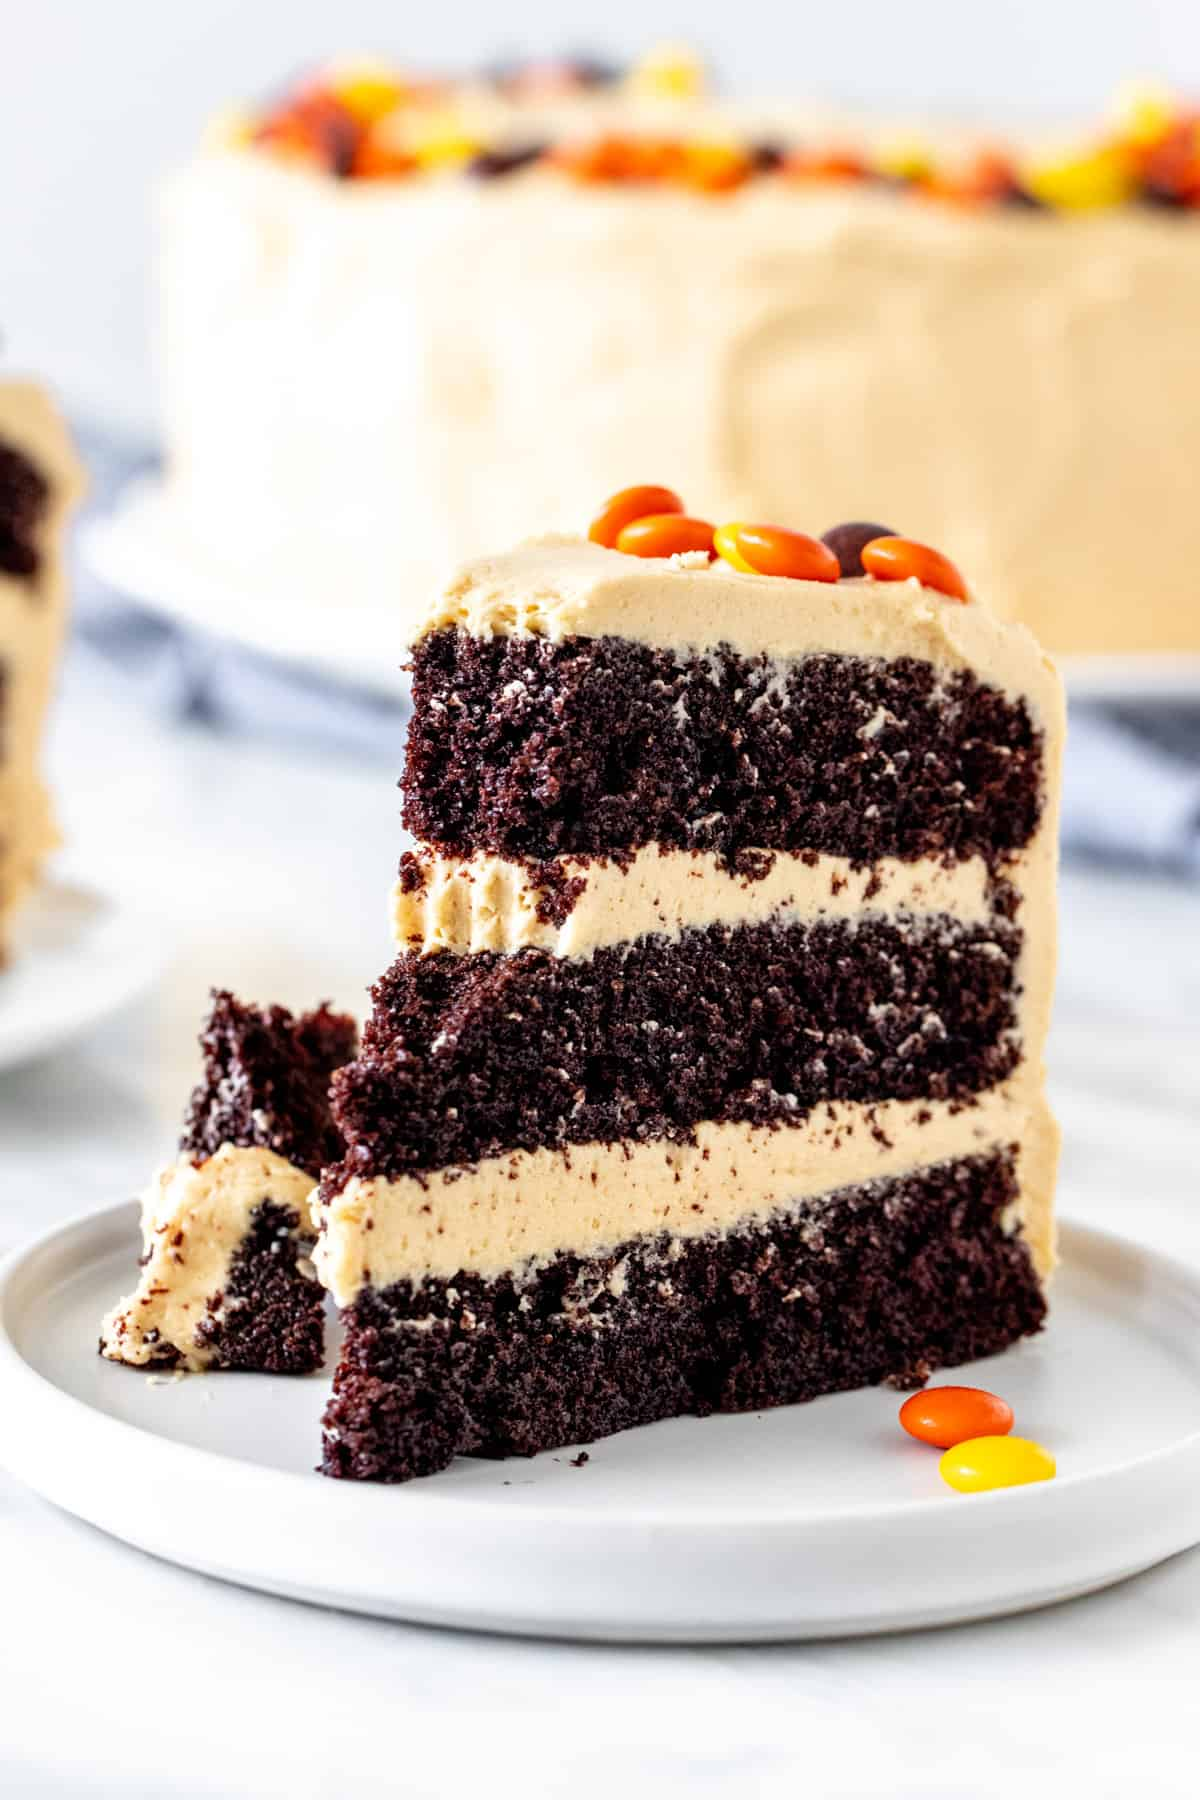 Slice of chocolate peanut butter cake with a bite taken out of it.